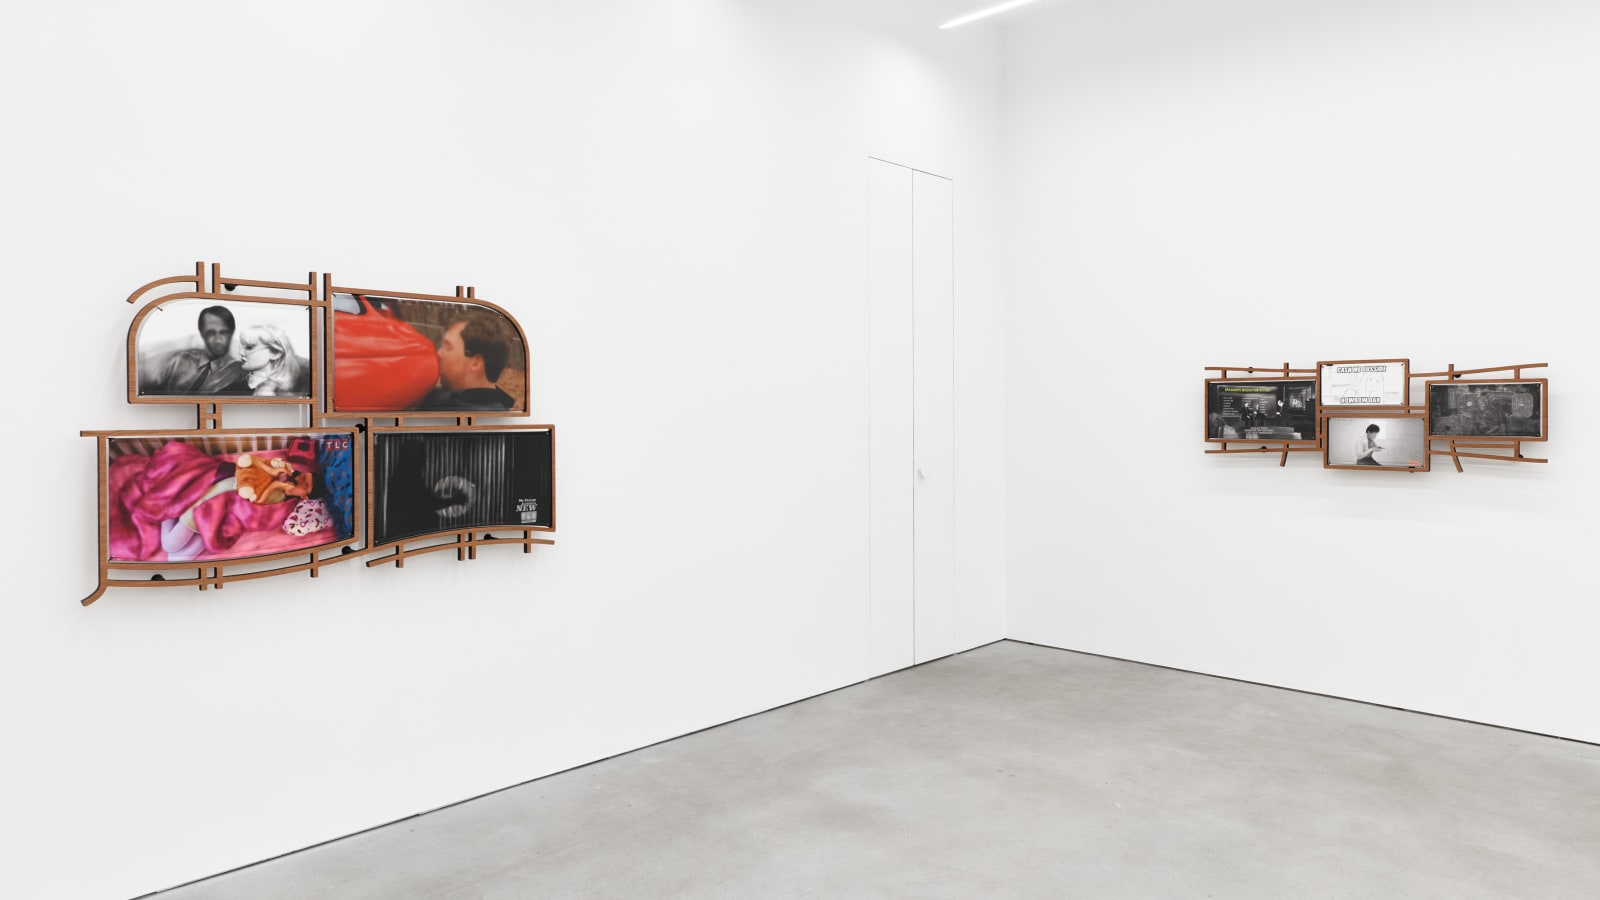 ANDREA CRESPO exhibition view, Step Right Up, Kraupa-Tuskany Zeidler, Berlin, 2019